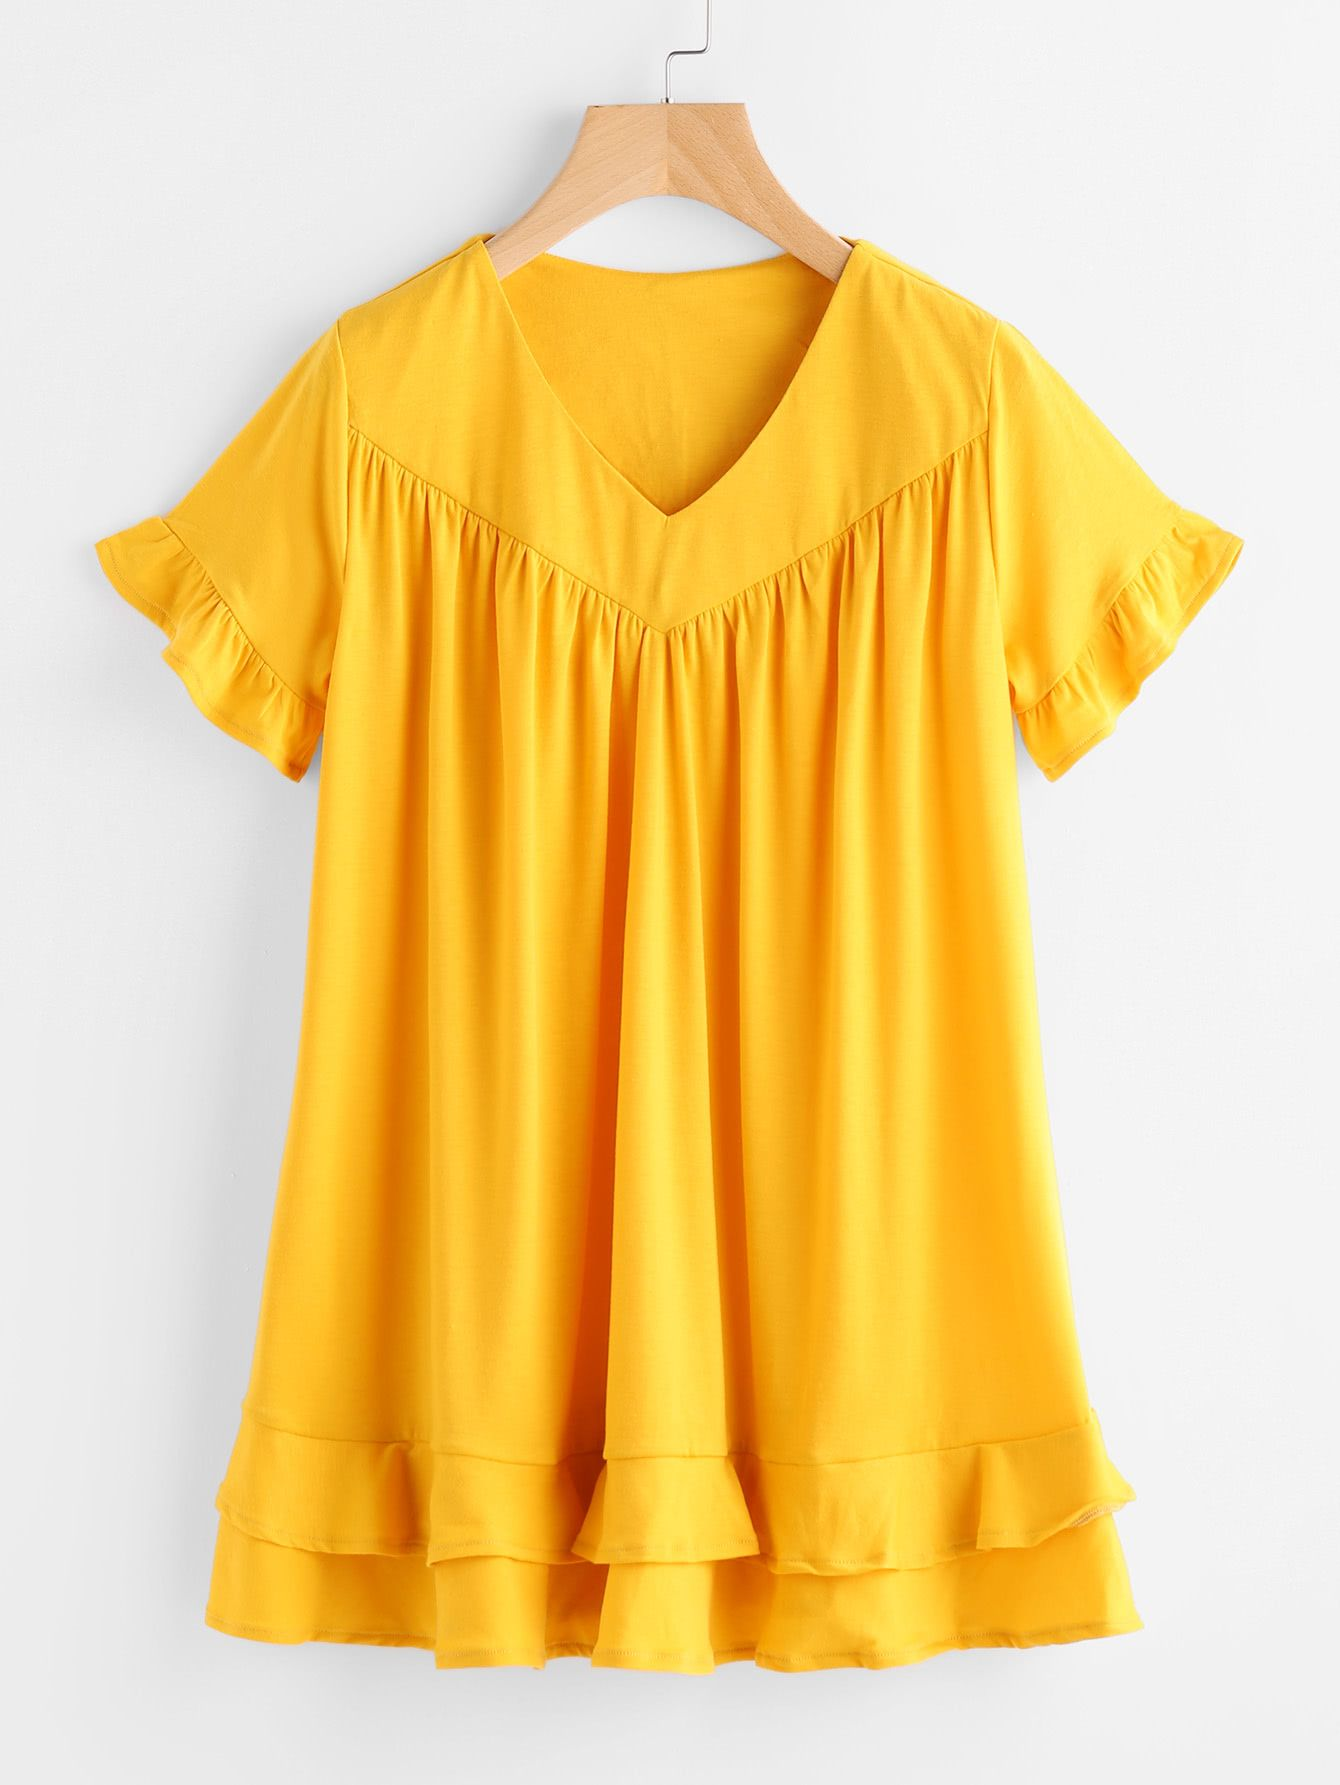 Buy it now. V Neckline Frill Trim Tiered Dress. Yellow Casual Cute Vacation Polyester V Neck Short Sleeve Shift Short Ruffle Plain Fabric has some stretch Summer Sun Dresses. , vestidoinformal, casual, informales, informal, day, kleidcasual, vestidoinformal, robeinformelle, vestitoinformale, día. SheIn  casual dress  for woman.